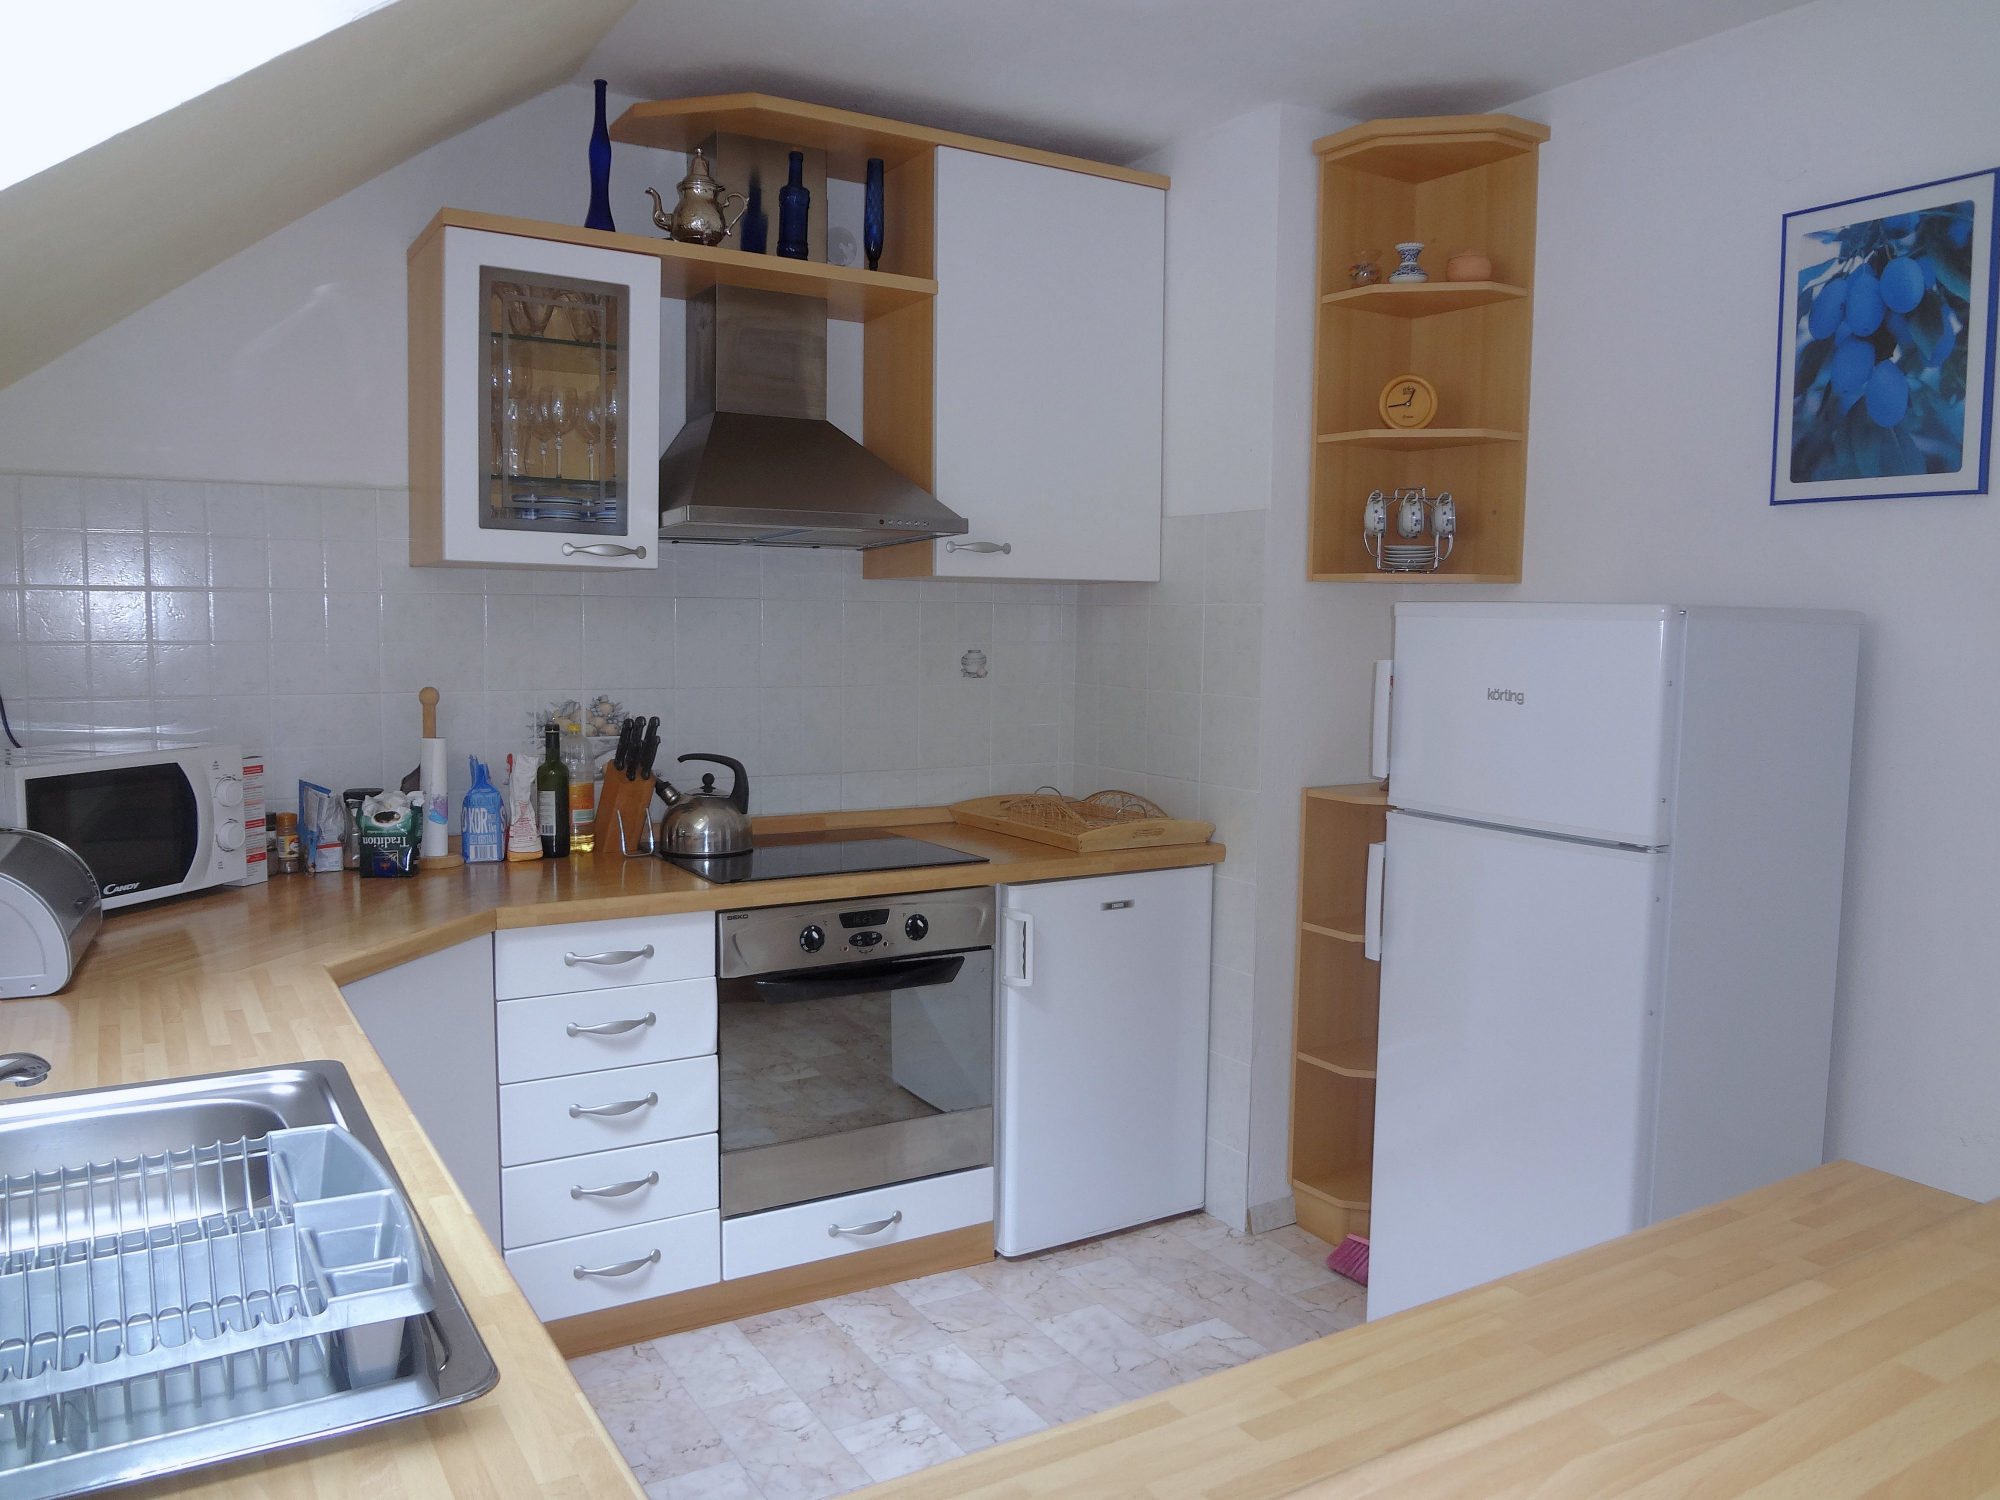 The kitchen of Apartments Fine Stay in the Bled area of Slovenia